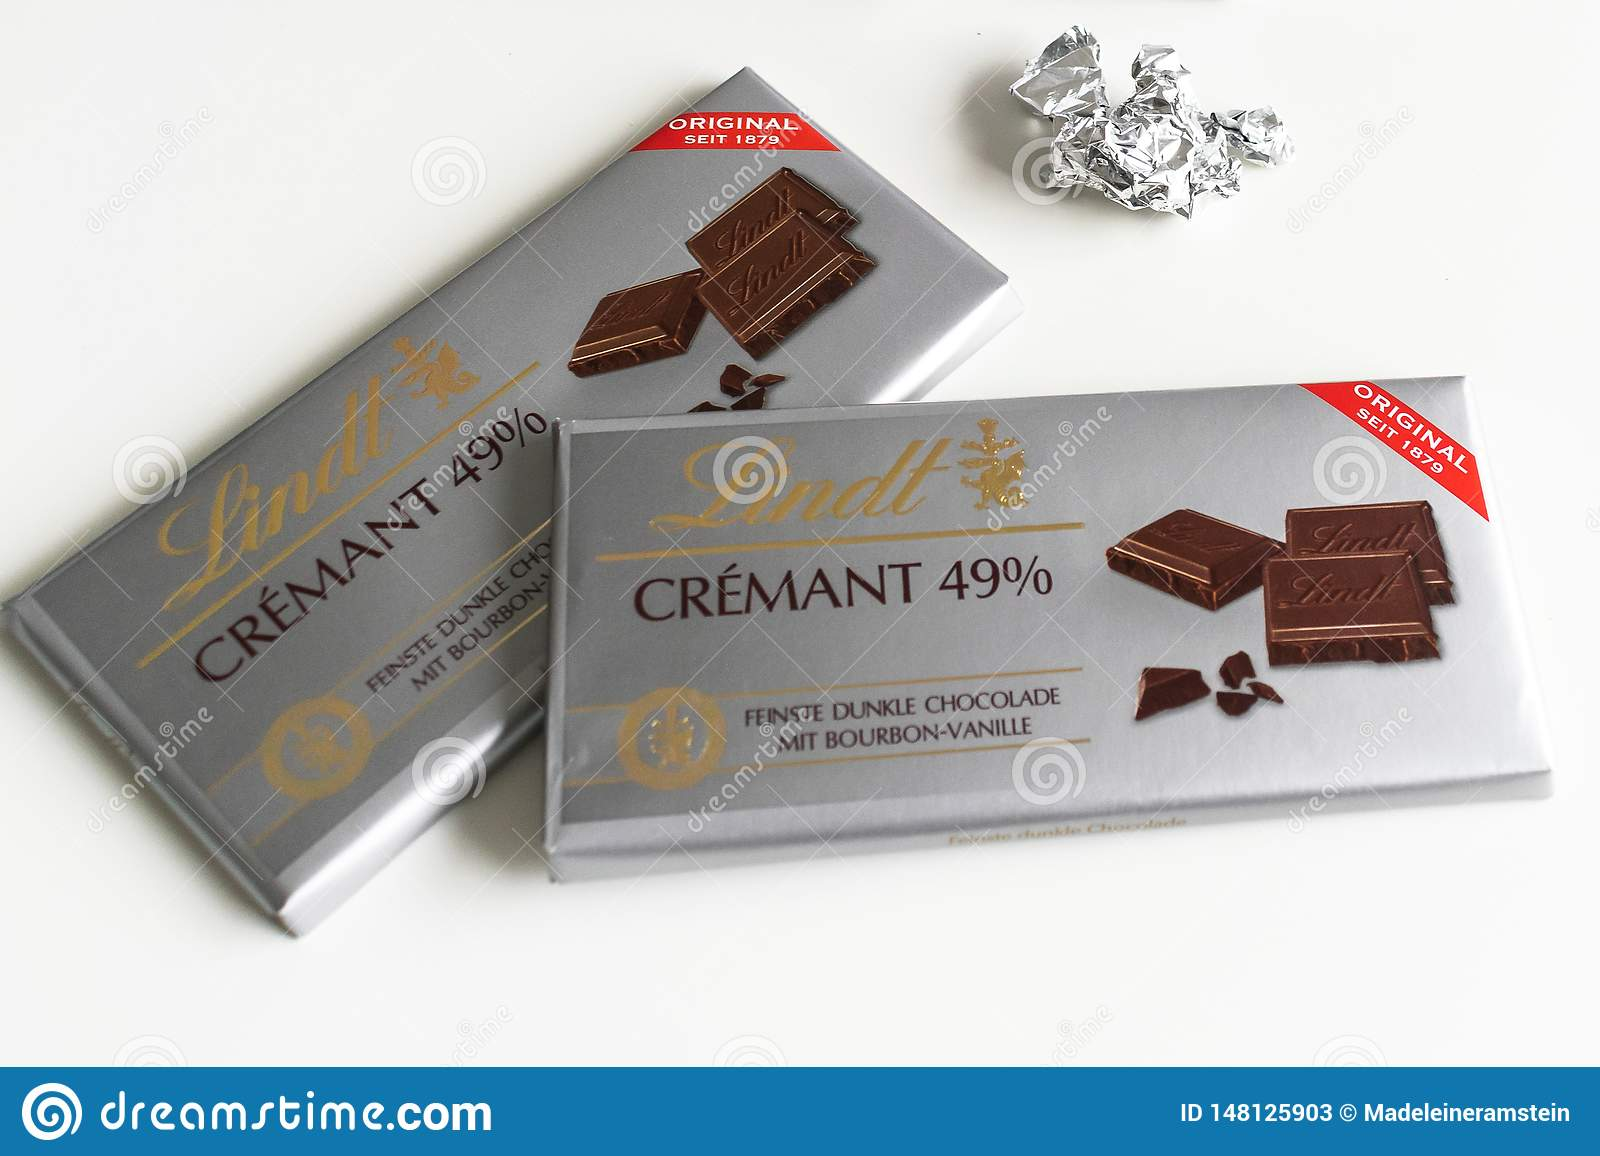 Lindt Chocolate Bar Crémant 49 Excellence 85 Cacao